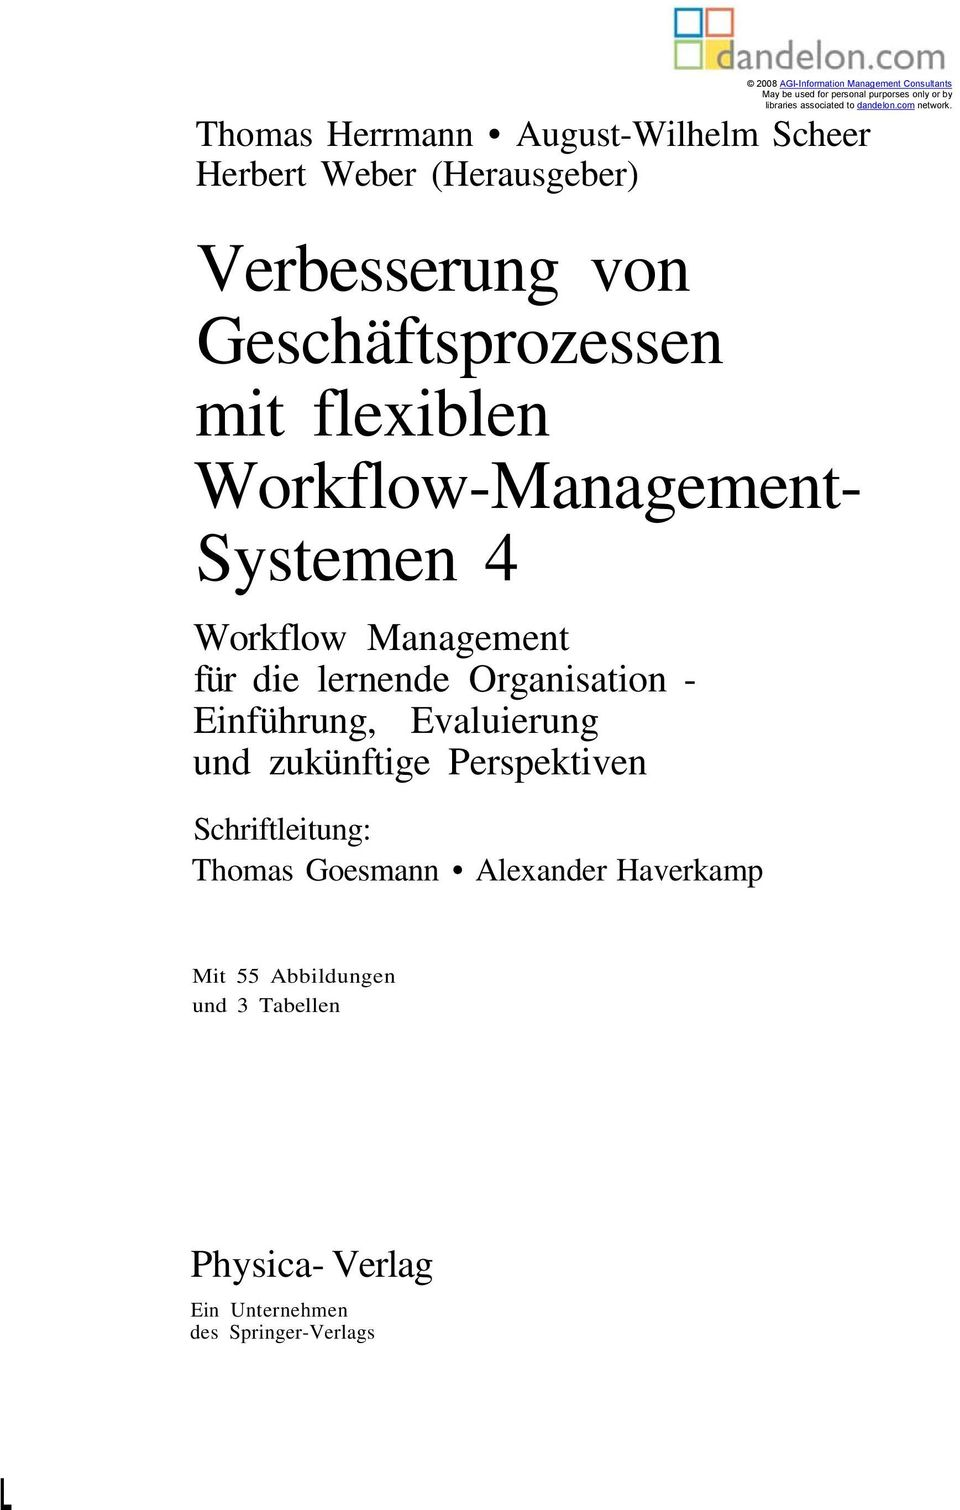 Perspektiven Schriftleitung: Thomas Goesmann Alexander Haverkamp 2008 AGI-Information Management Consultants May be used for